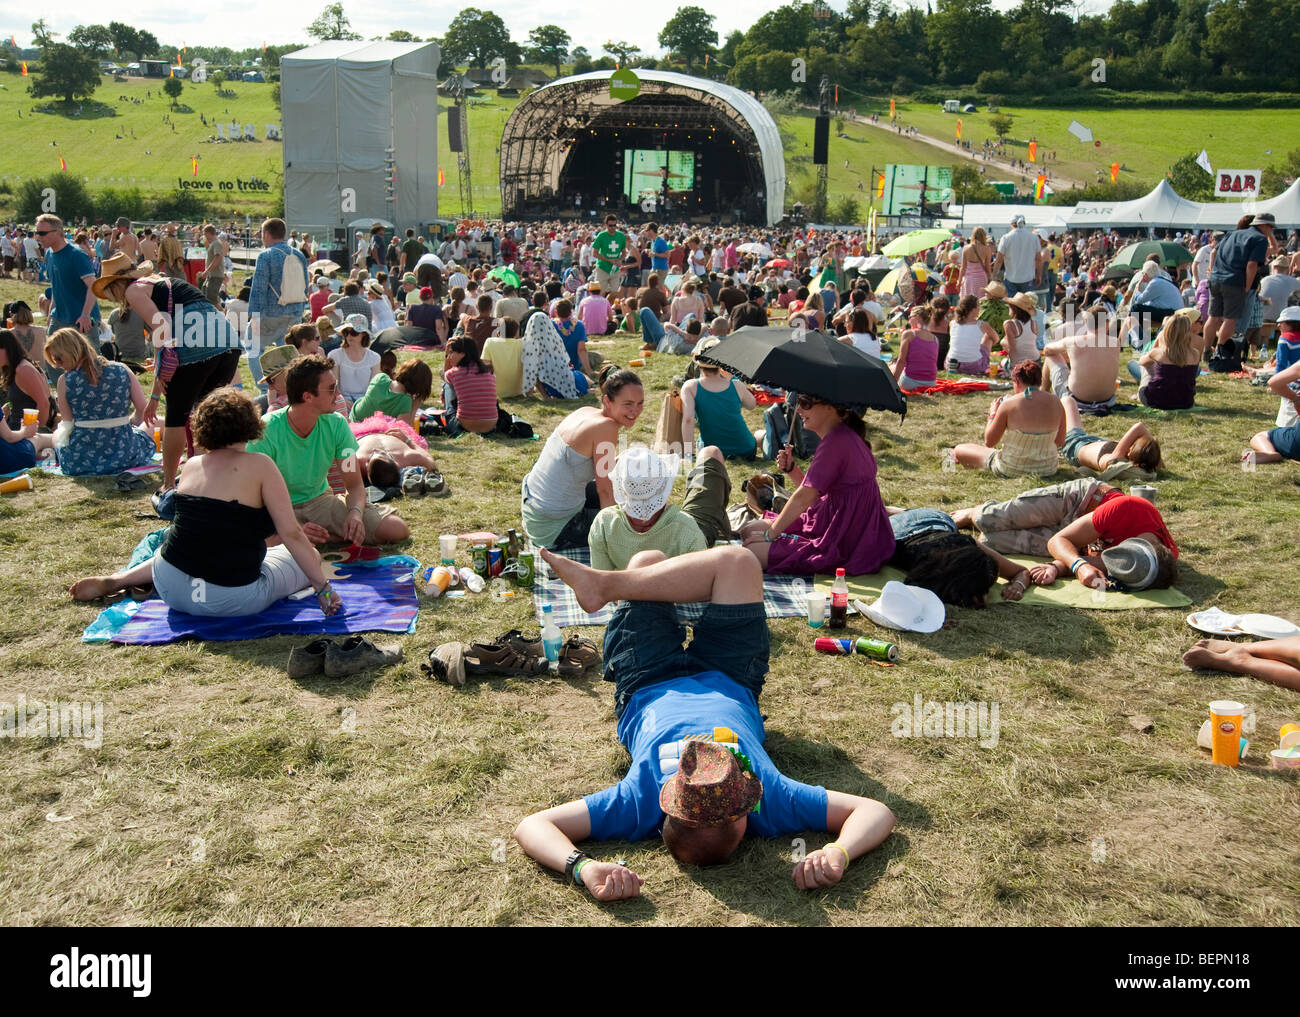 People at the Big Chill festival in Britain - Stock Image